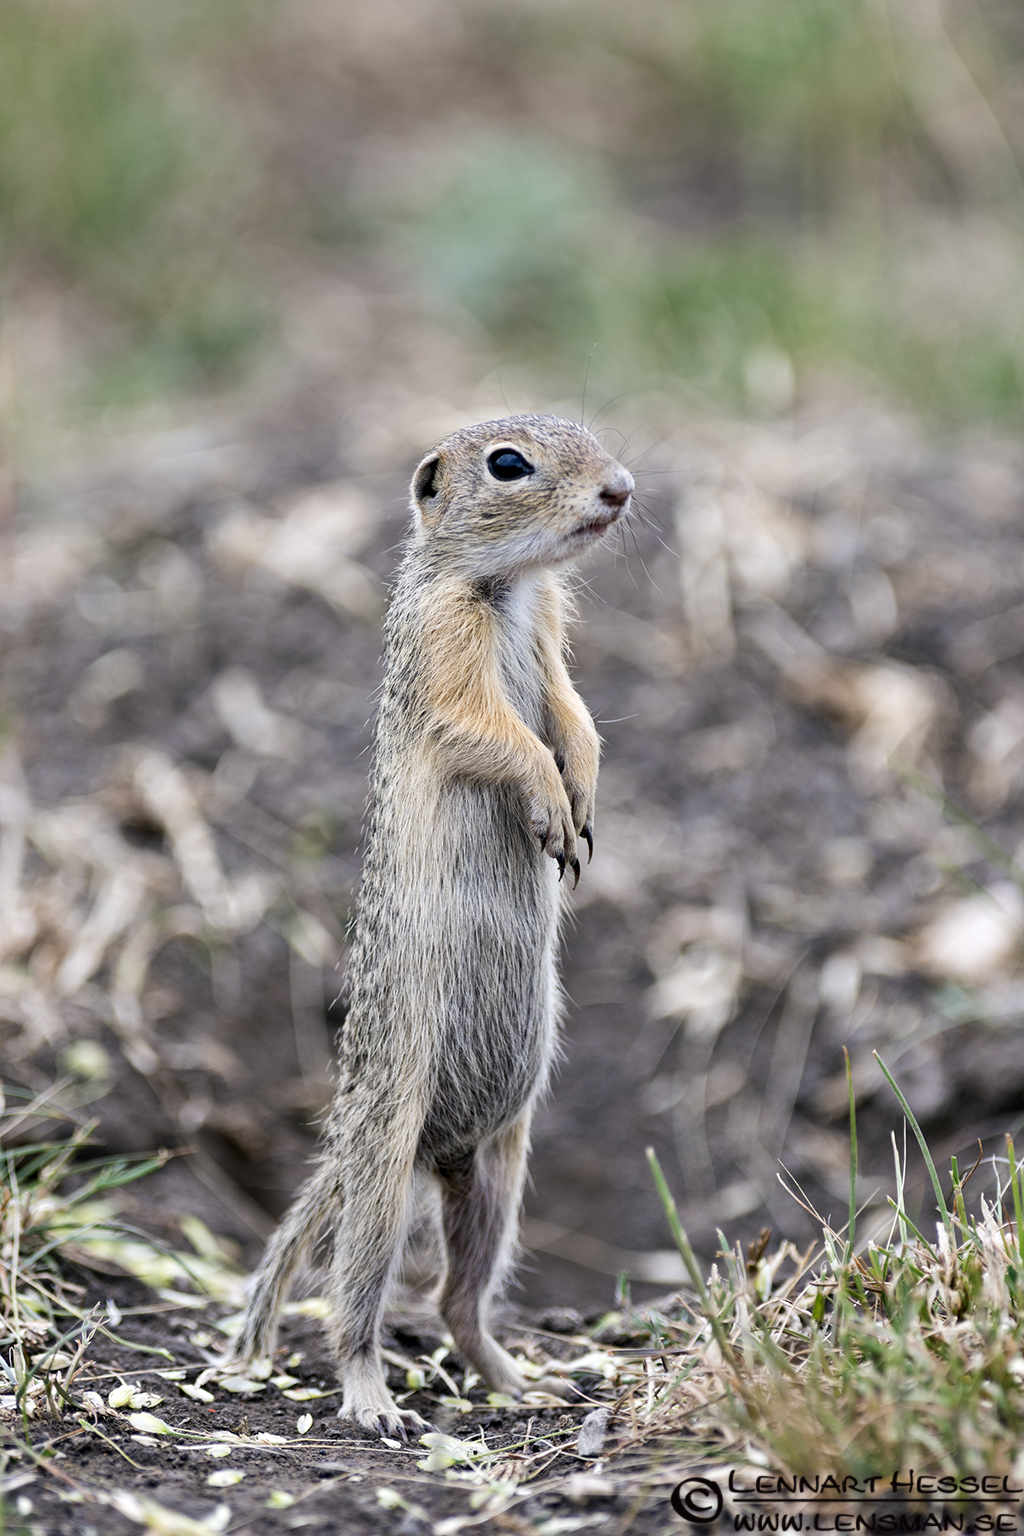 Ground squirrel in Hungary